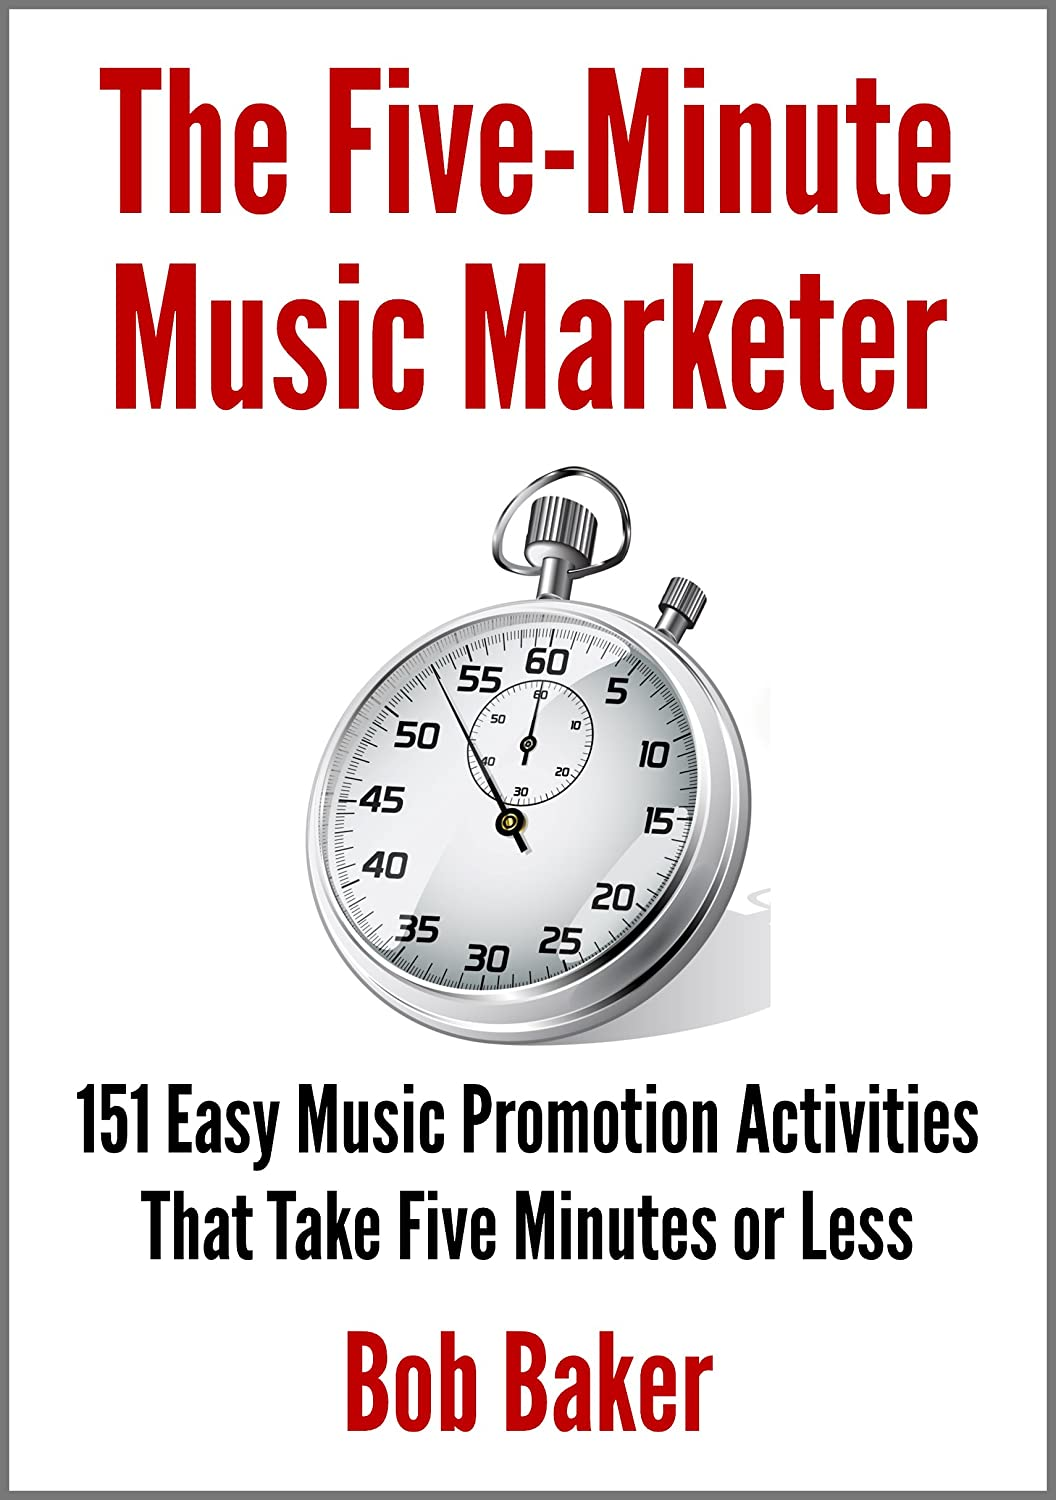 Five-Minute Music Marketer Book